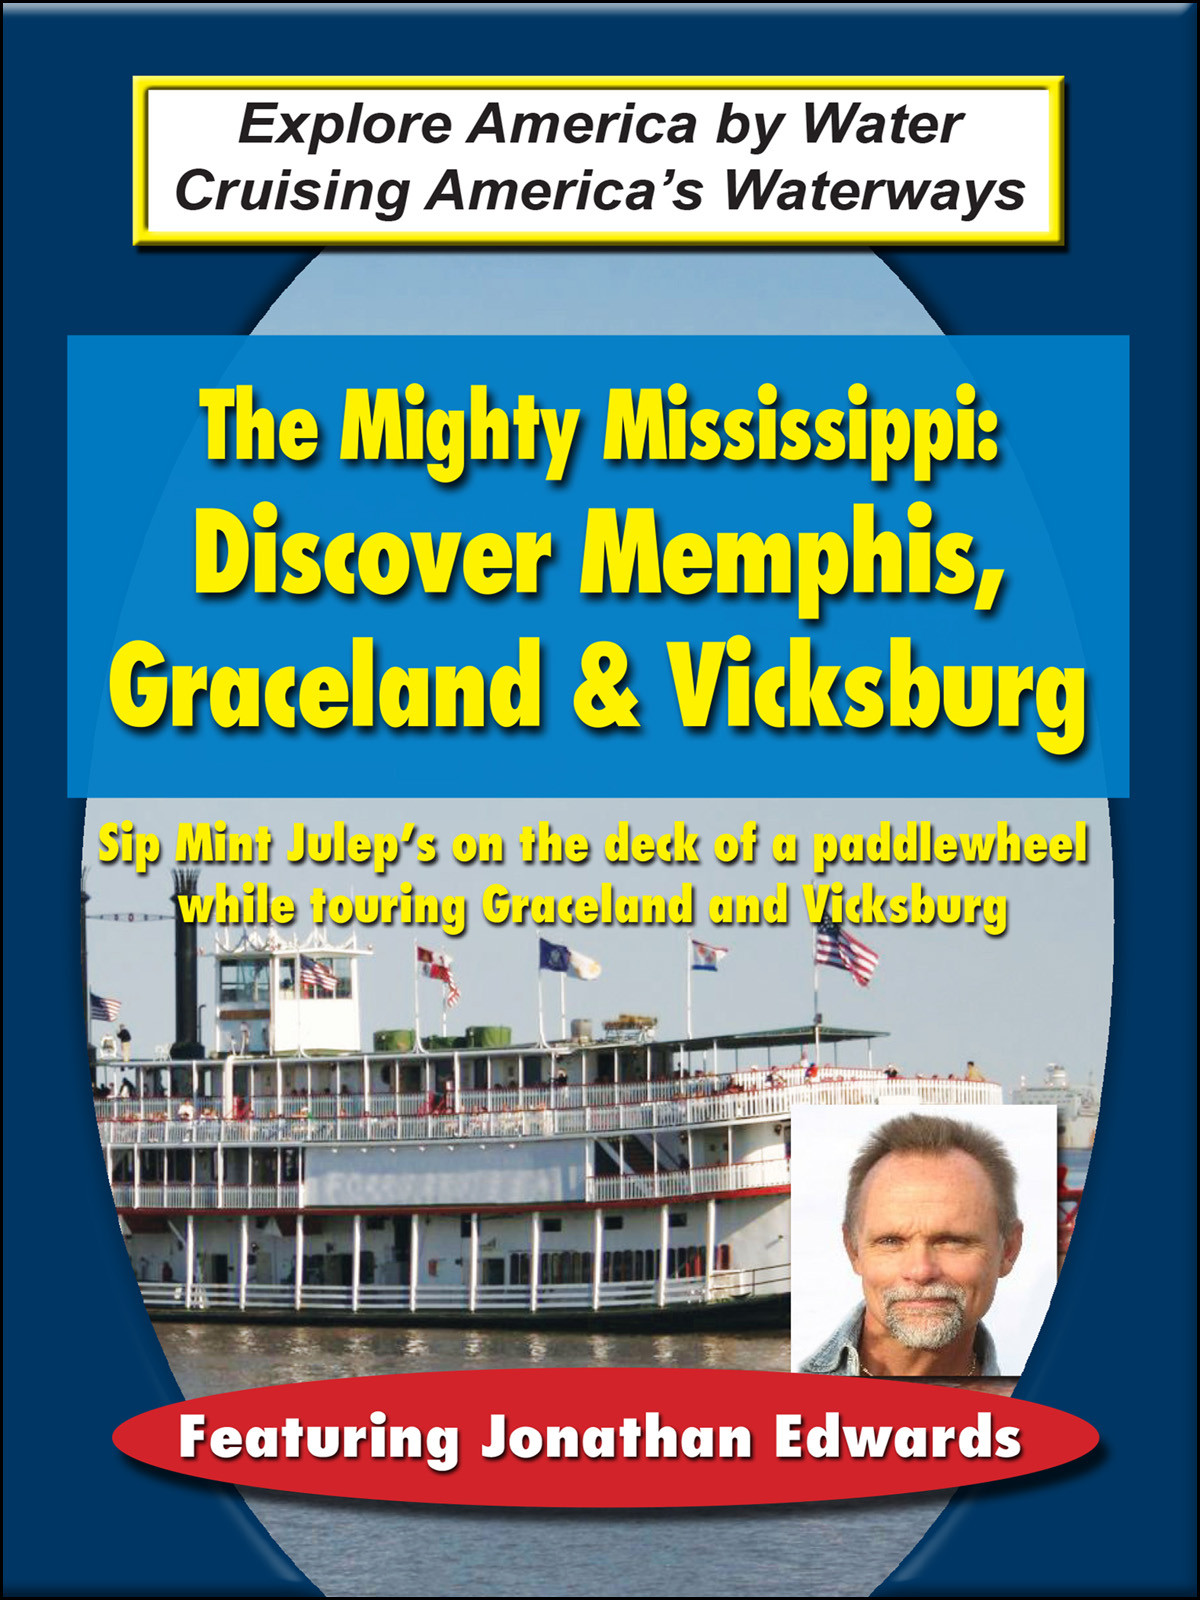 T8897 - The Mighty Mississippi Discover Memphis, Graceland & Vicksburg